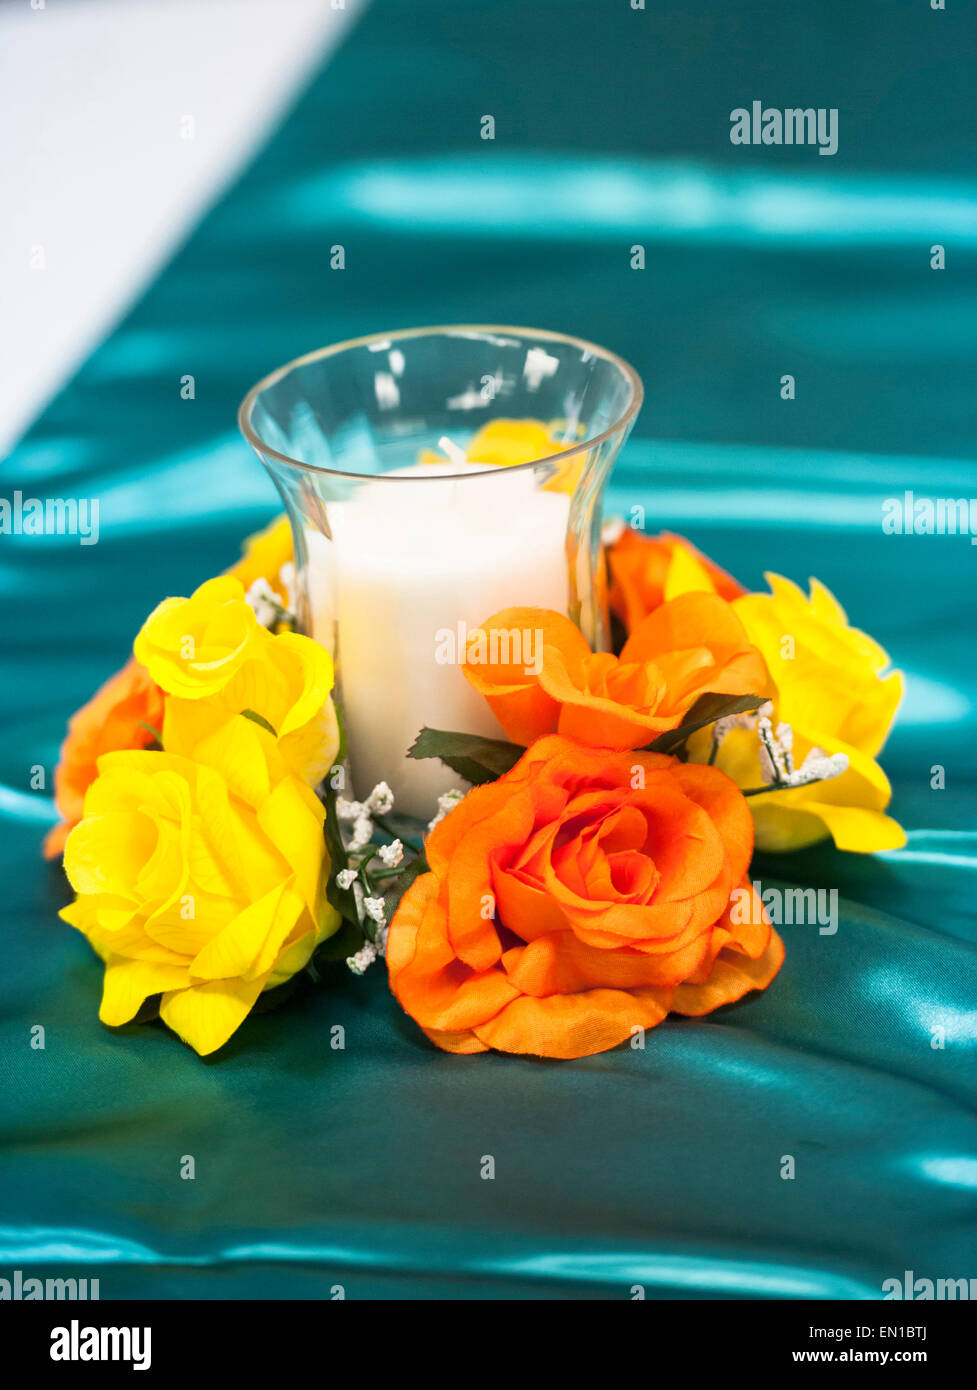 Wedding decorations blue with orange and yellow flowers stock wedding decorations blue with orange and yellow flowers junglespirit Images